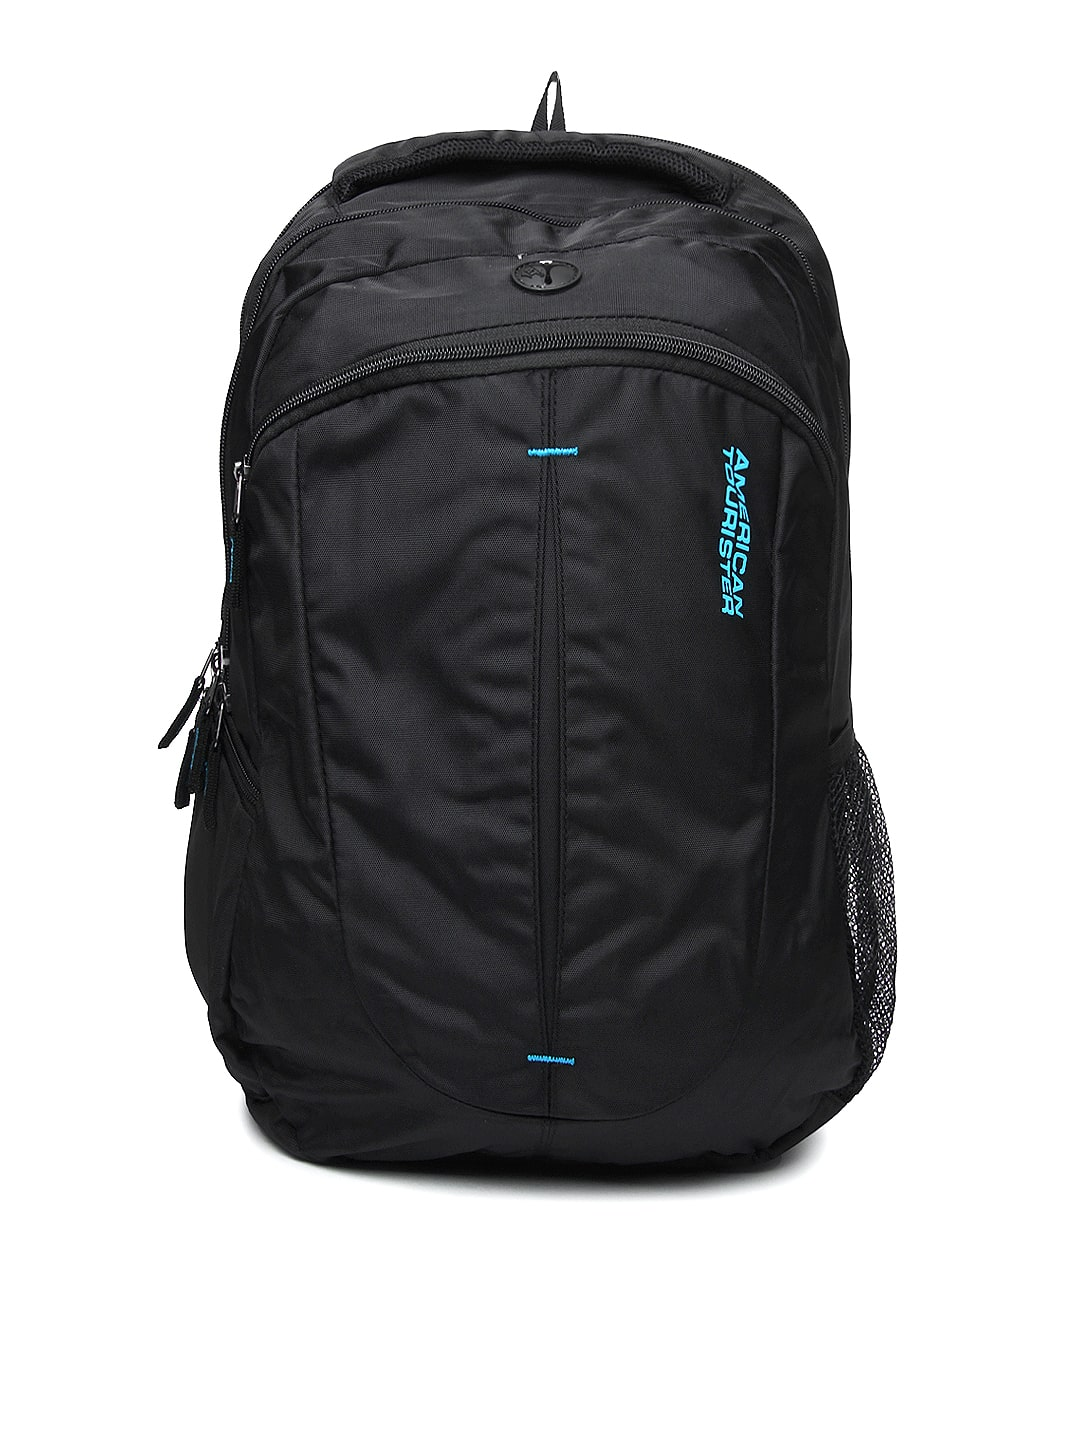 American Tourister Backpack Price List - Backpack For Your Vacations 8542d4d1b2916